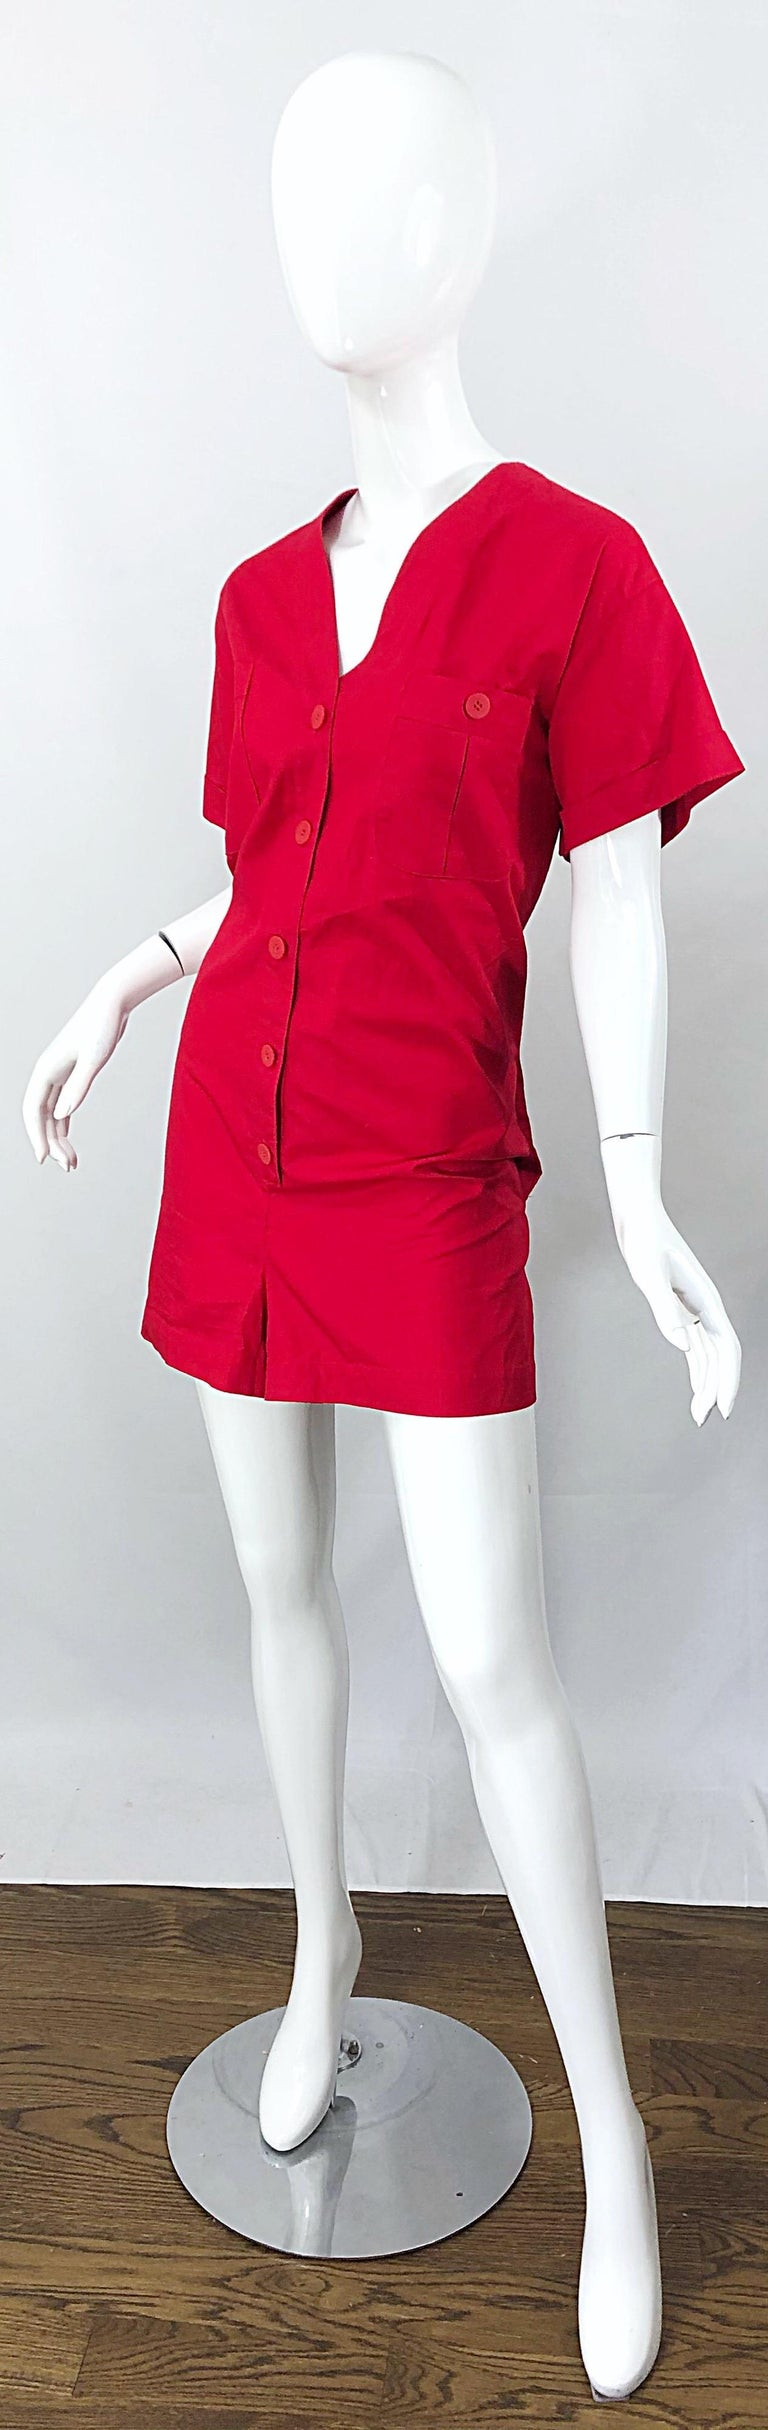 NWT Vintage Christian Dior Romper Size 14 Lipstick Red Cotton One Piece Jumpsuit In New Condition For Sale In Chicago, IL